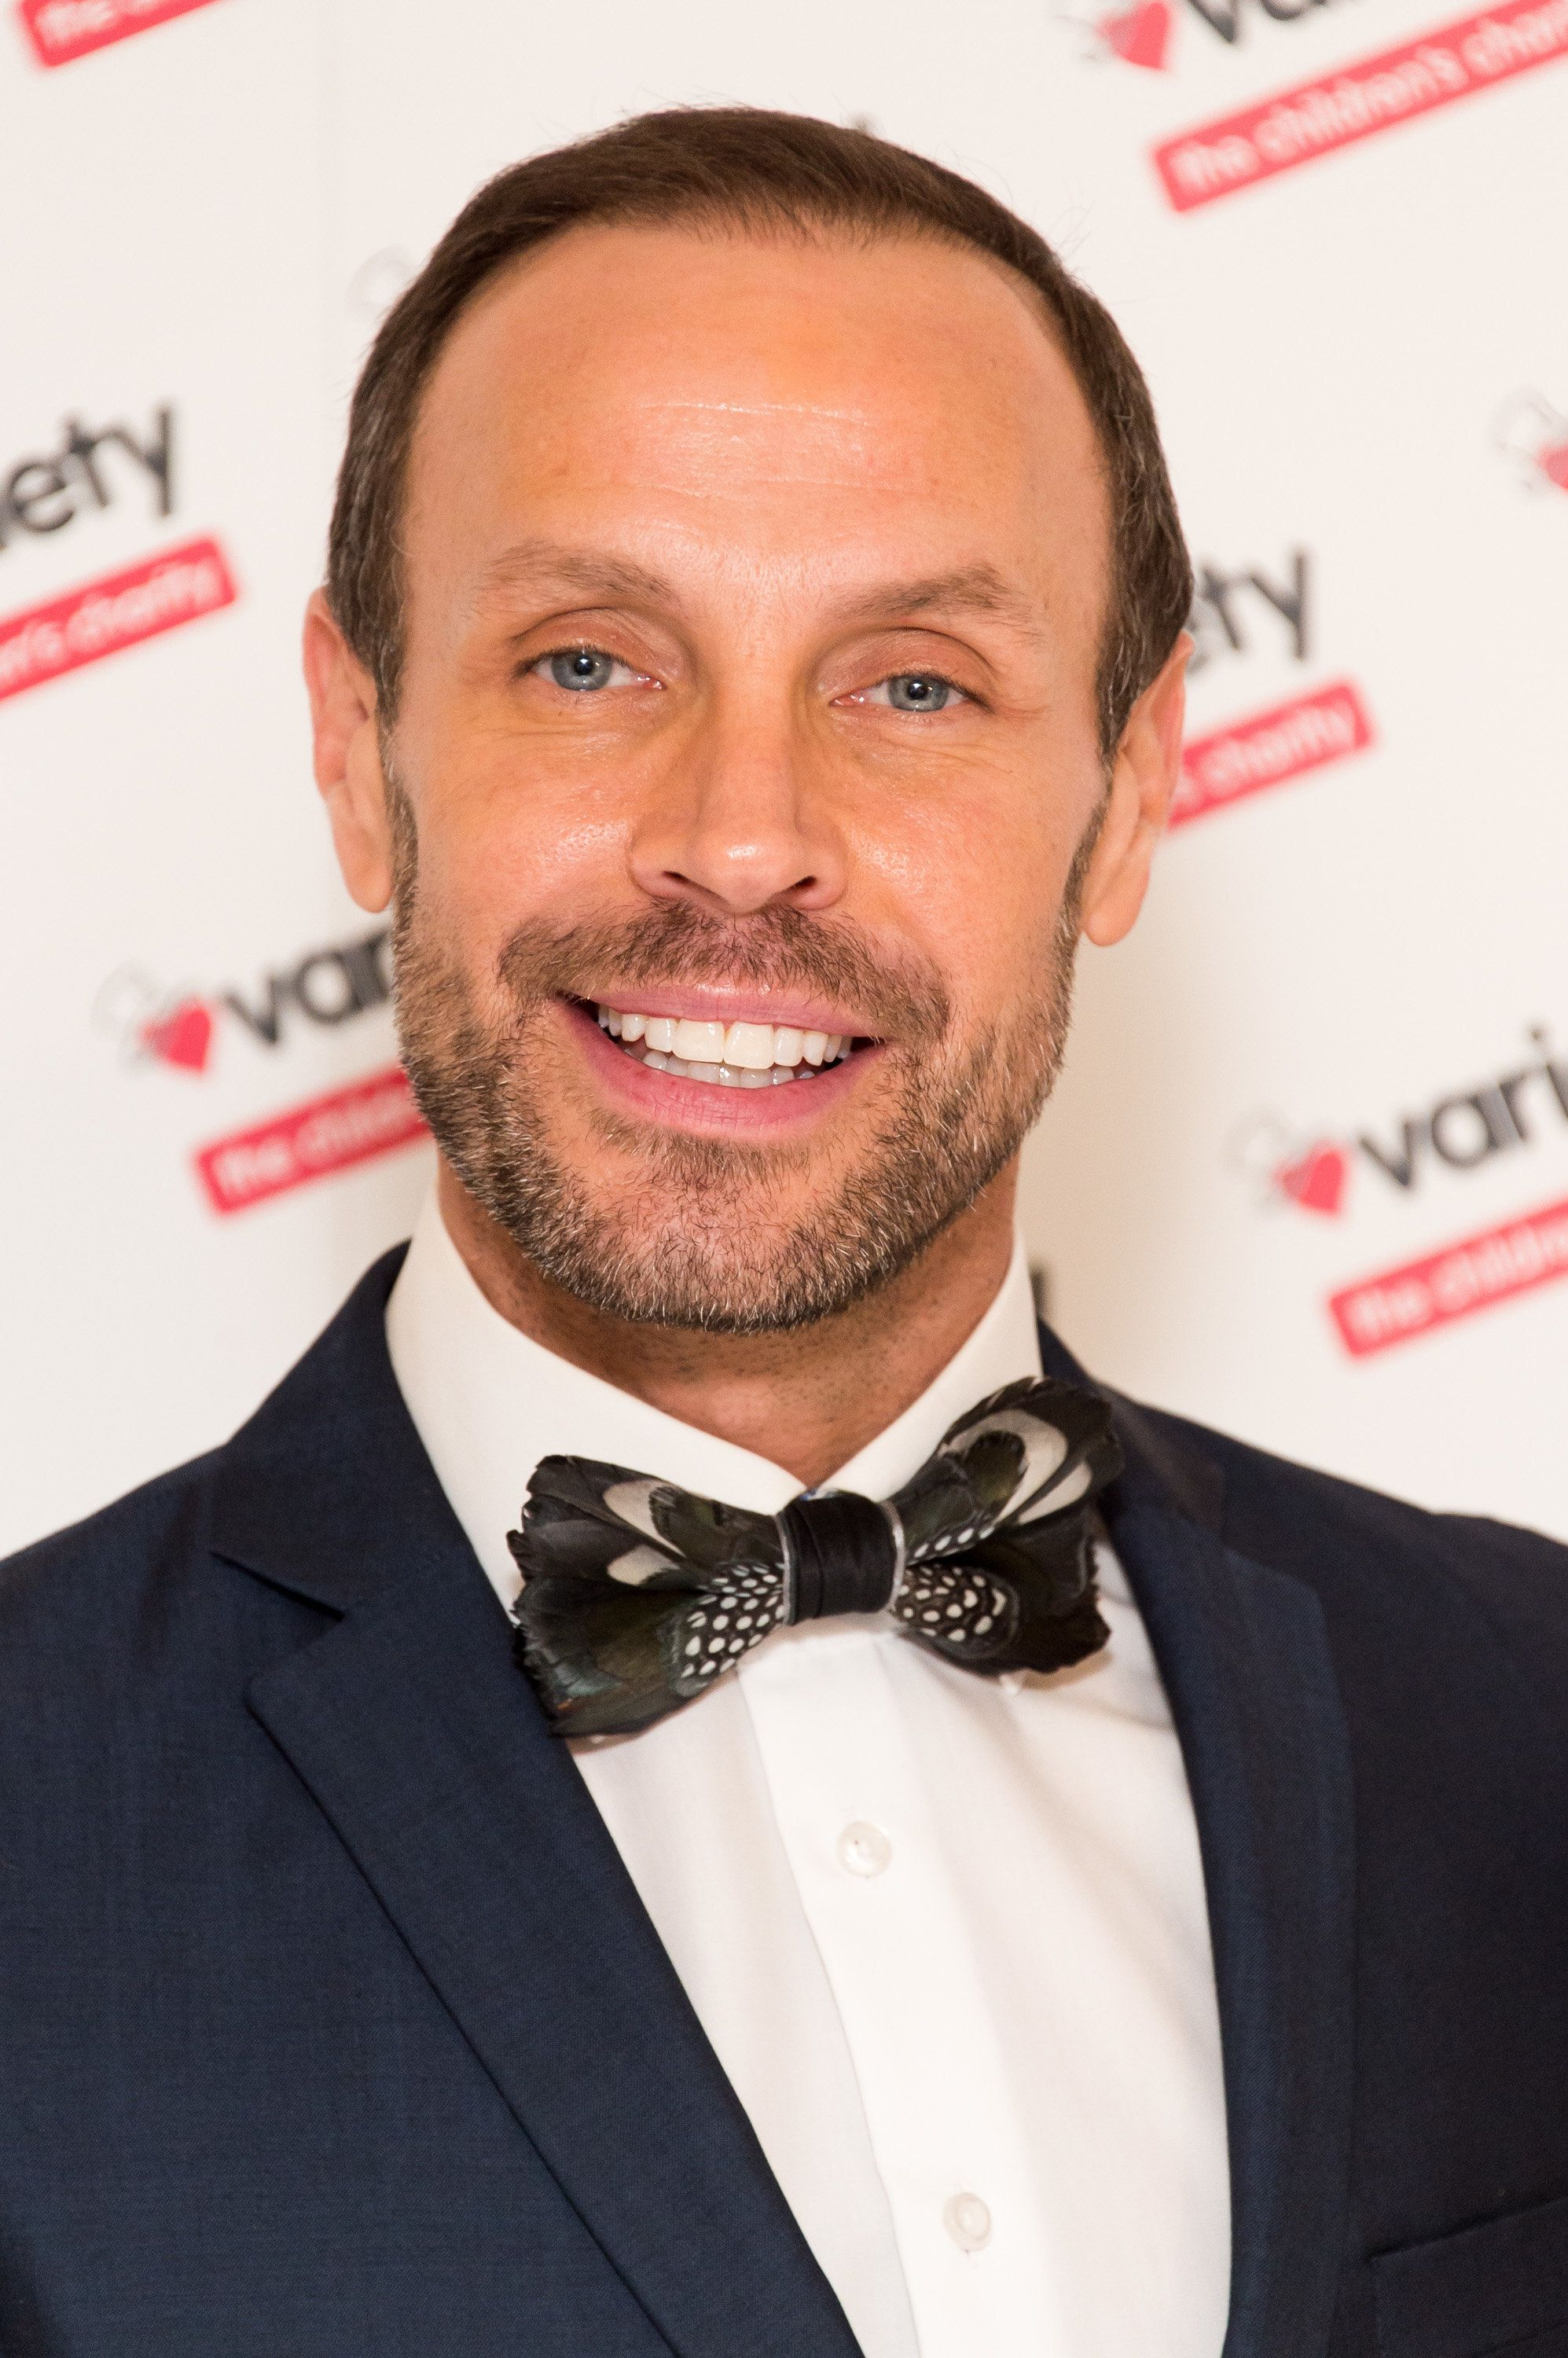 Dancing On Ice's Jason Gardiner Slams 'Hypersensitive' Celebs, Making A Promise About This